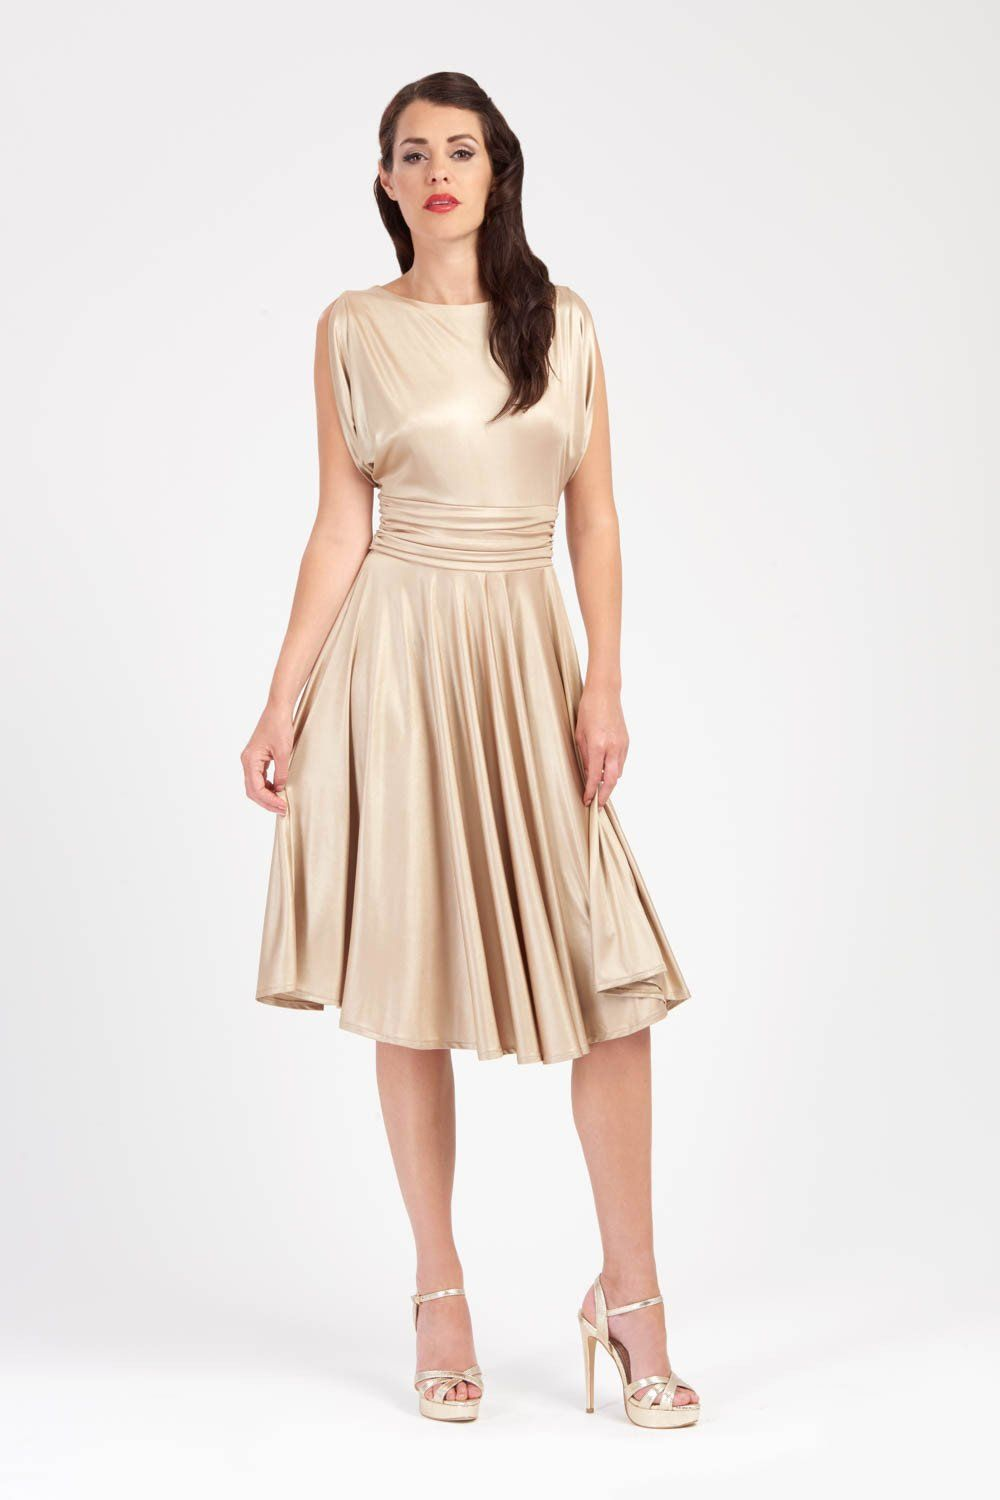 Rita draped sleeve gold dress dresses pinterest gold and